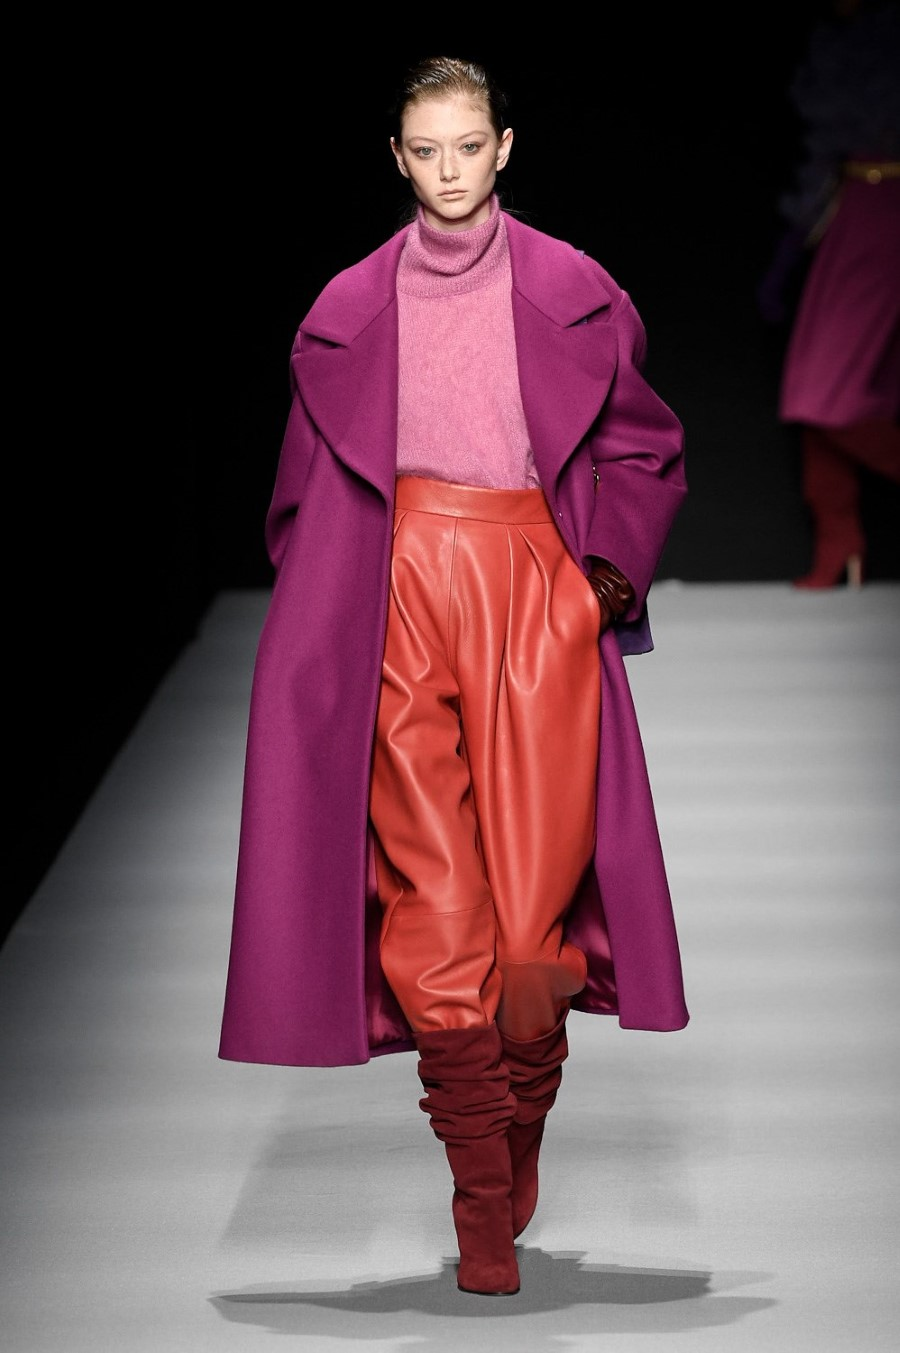 Alberta Ferretti - Fall Winter 2020 - Milan Fashion Week